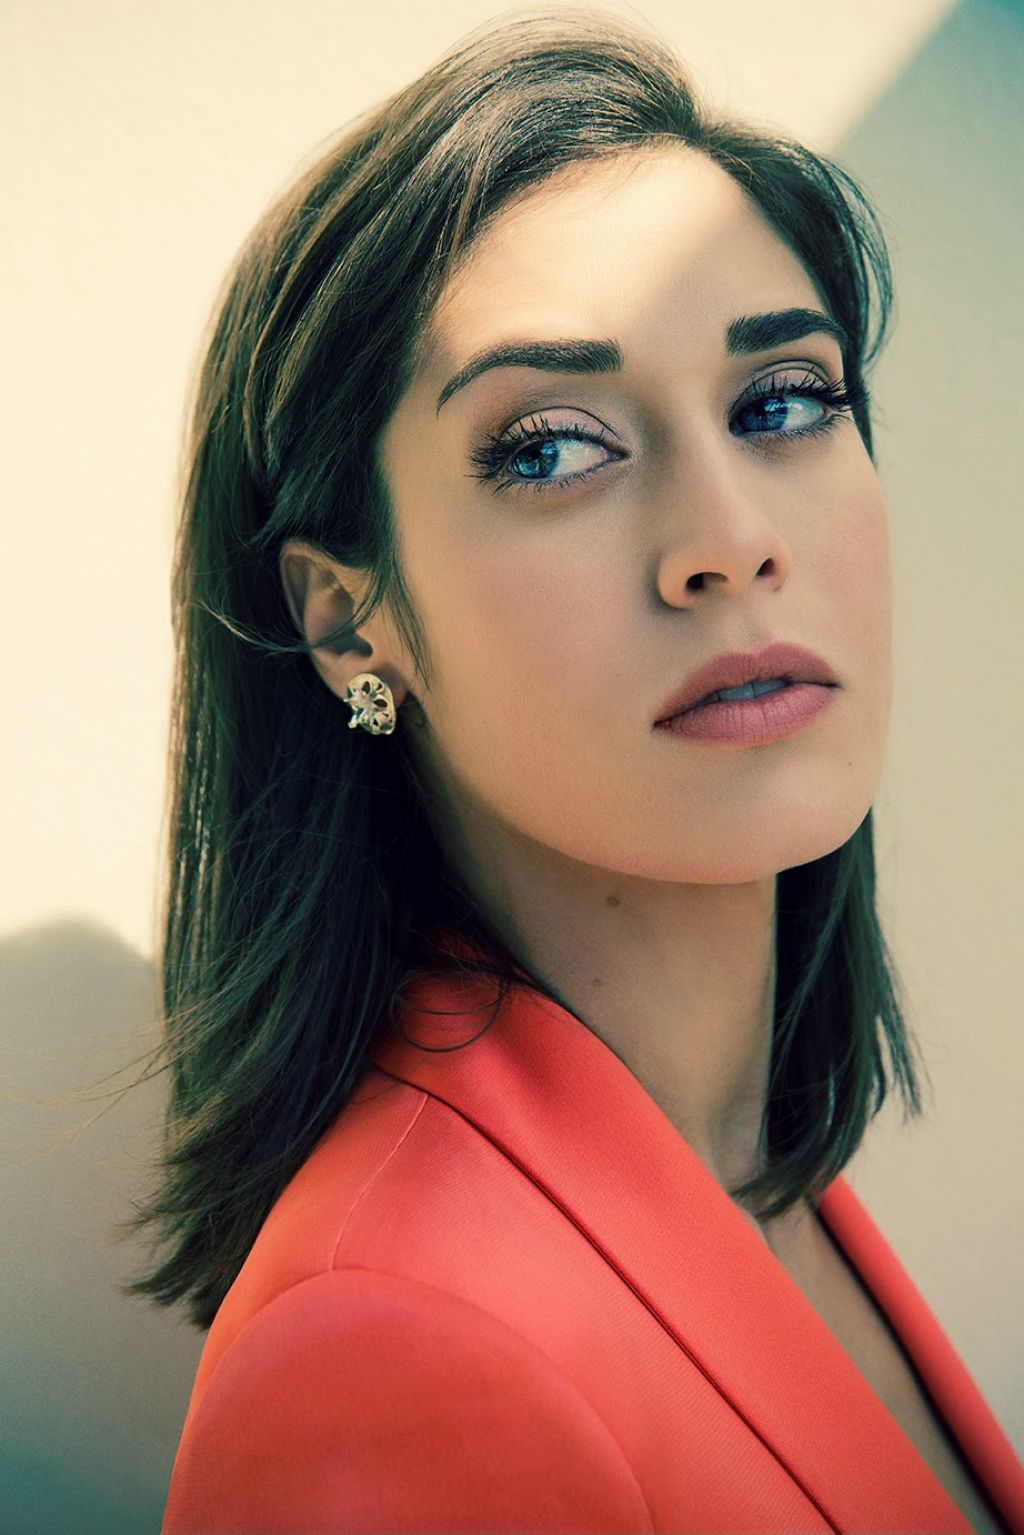 Lizzy caplan save the date 05 4